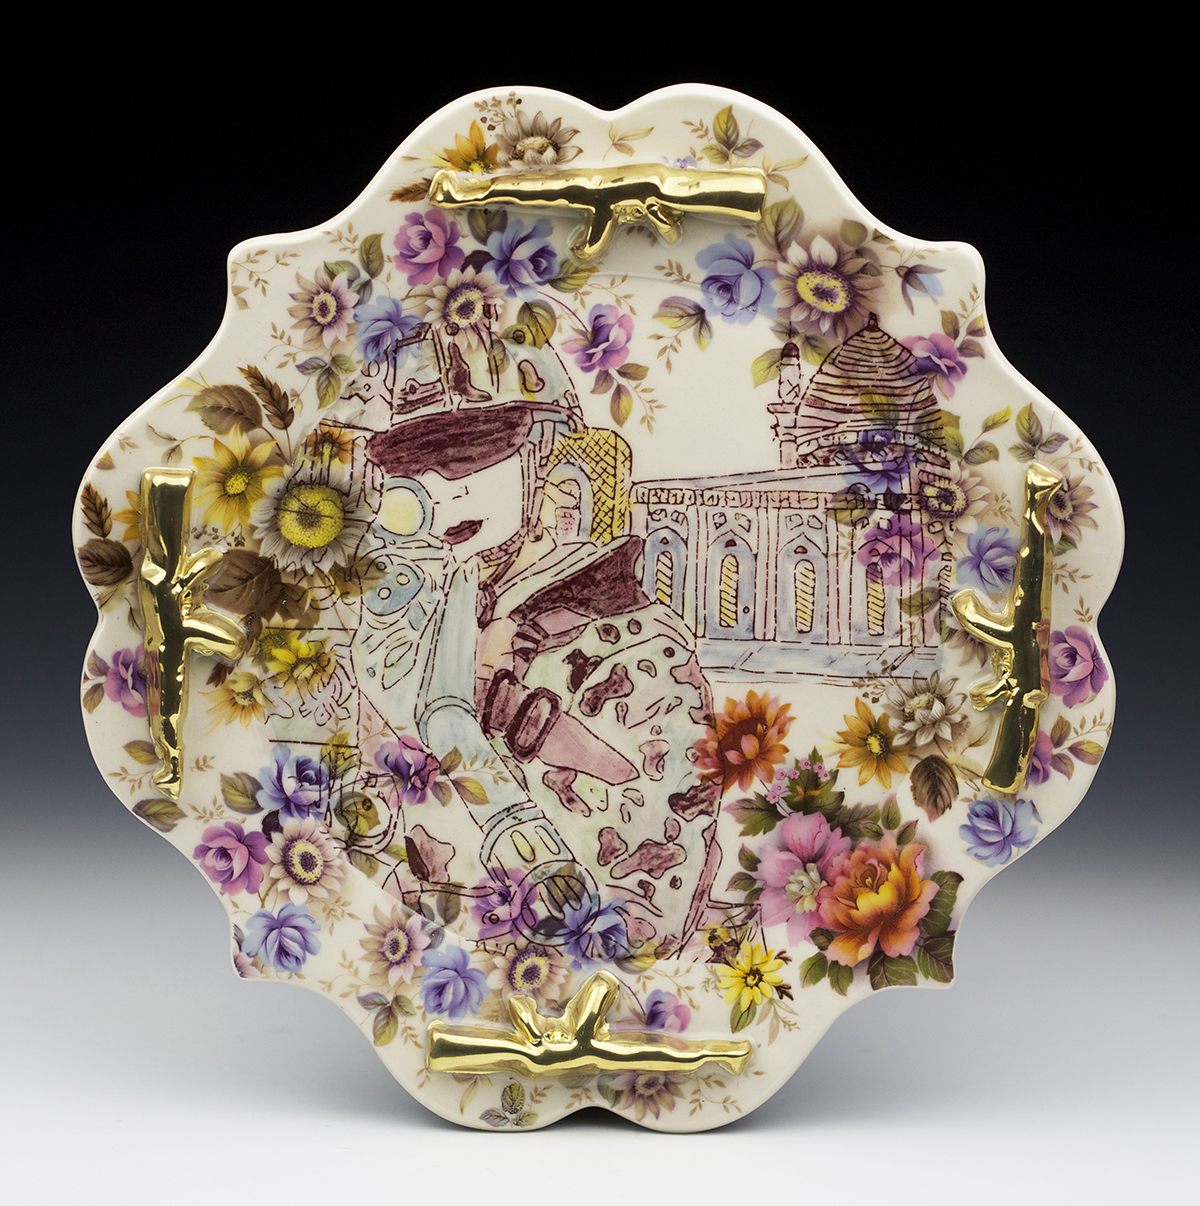 Ornate ceramic plate with drawn face of military woman pointing gun at viewer.